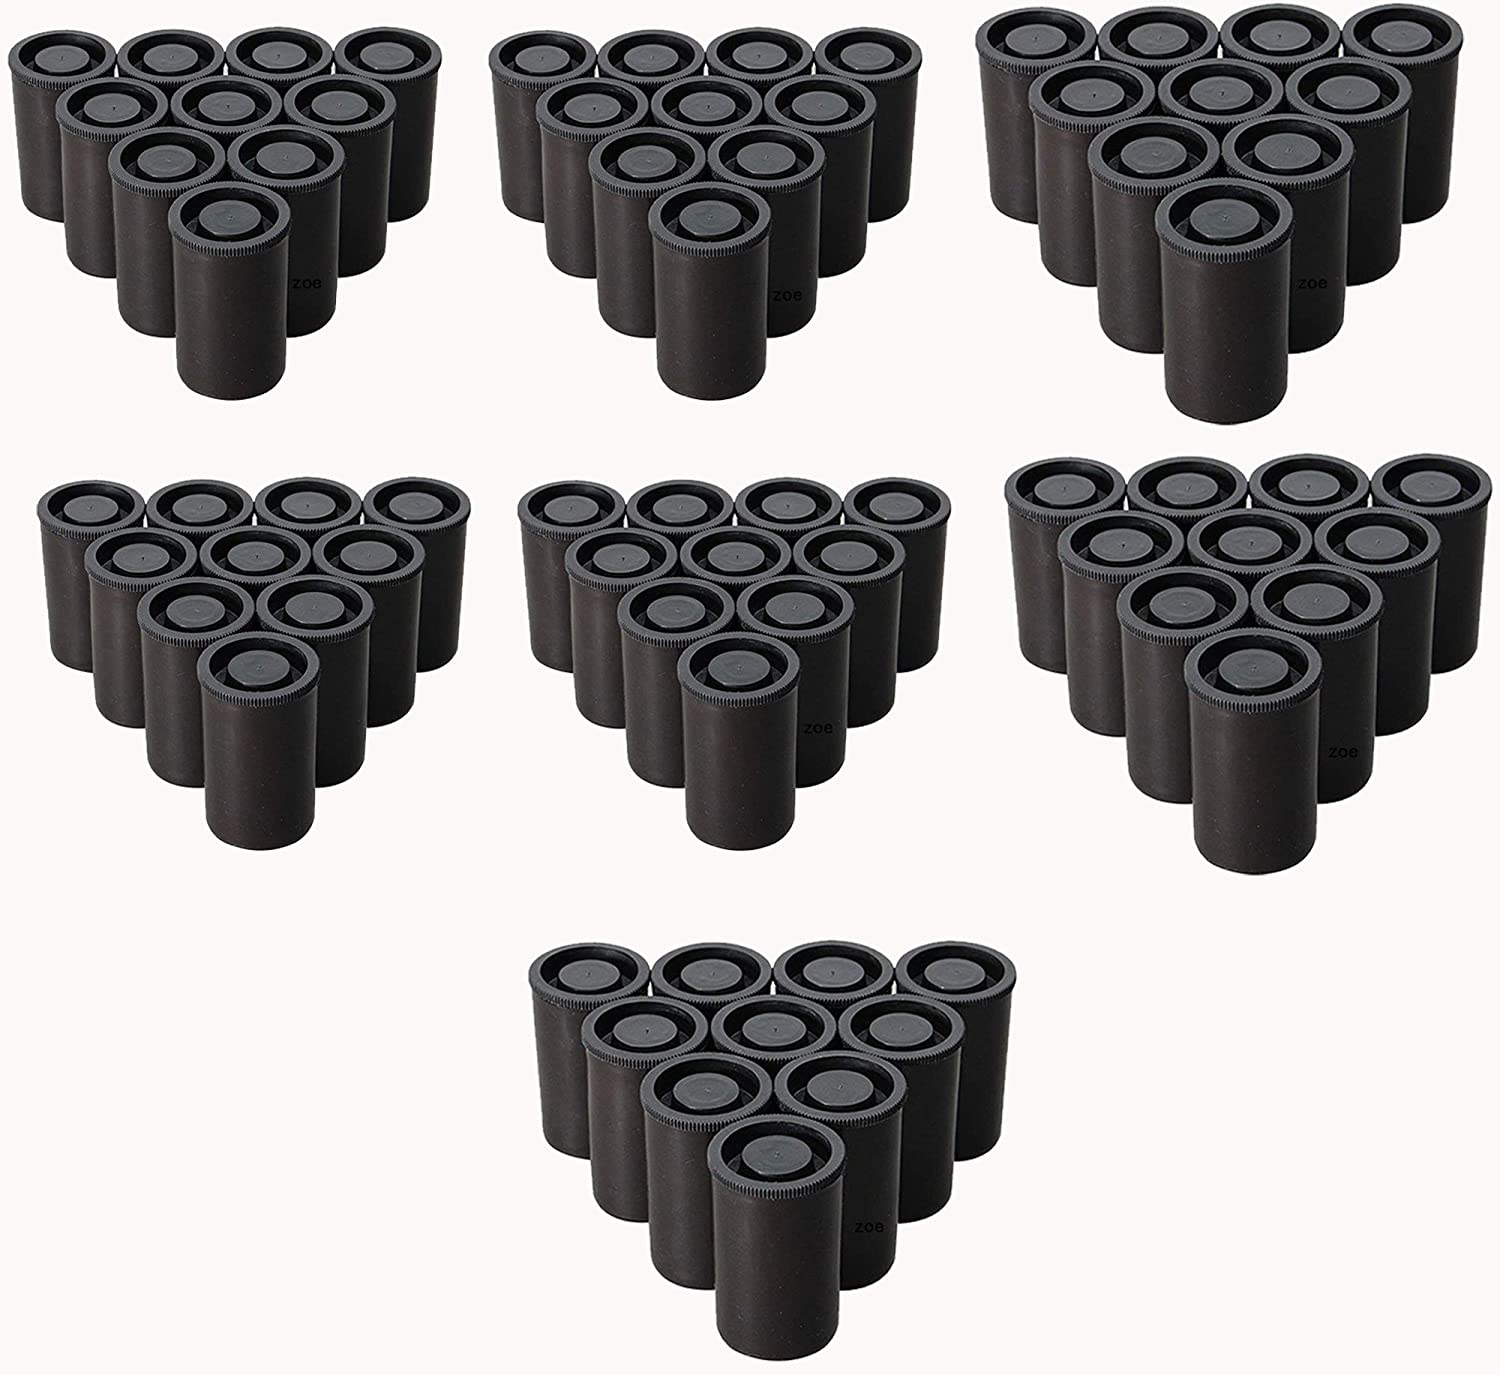 Black Film Canister with Caps for 35mm Film 70 PCS